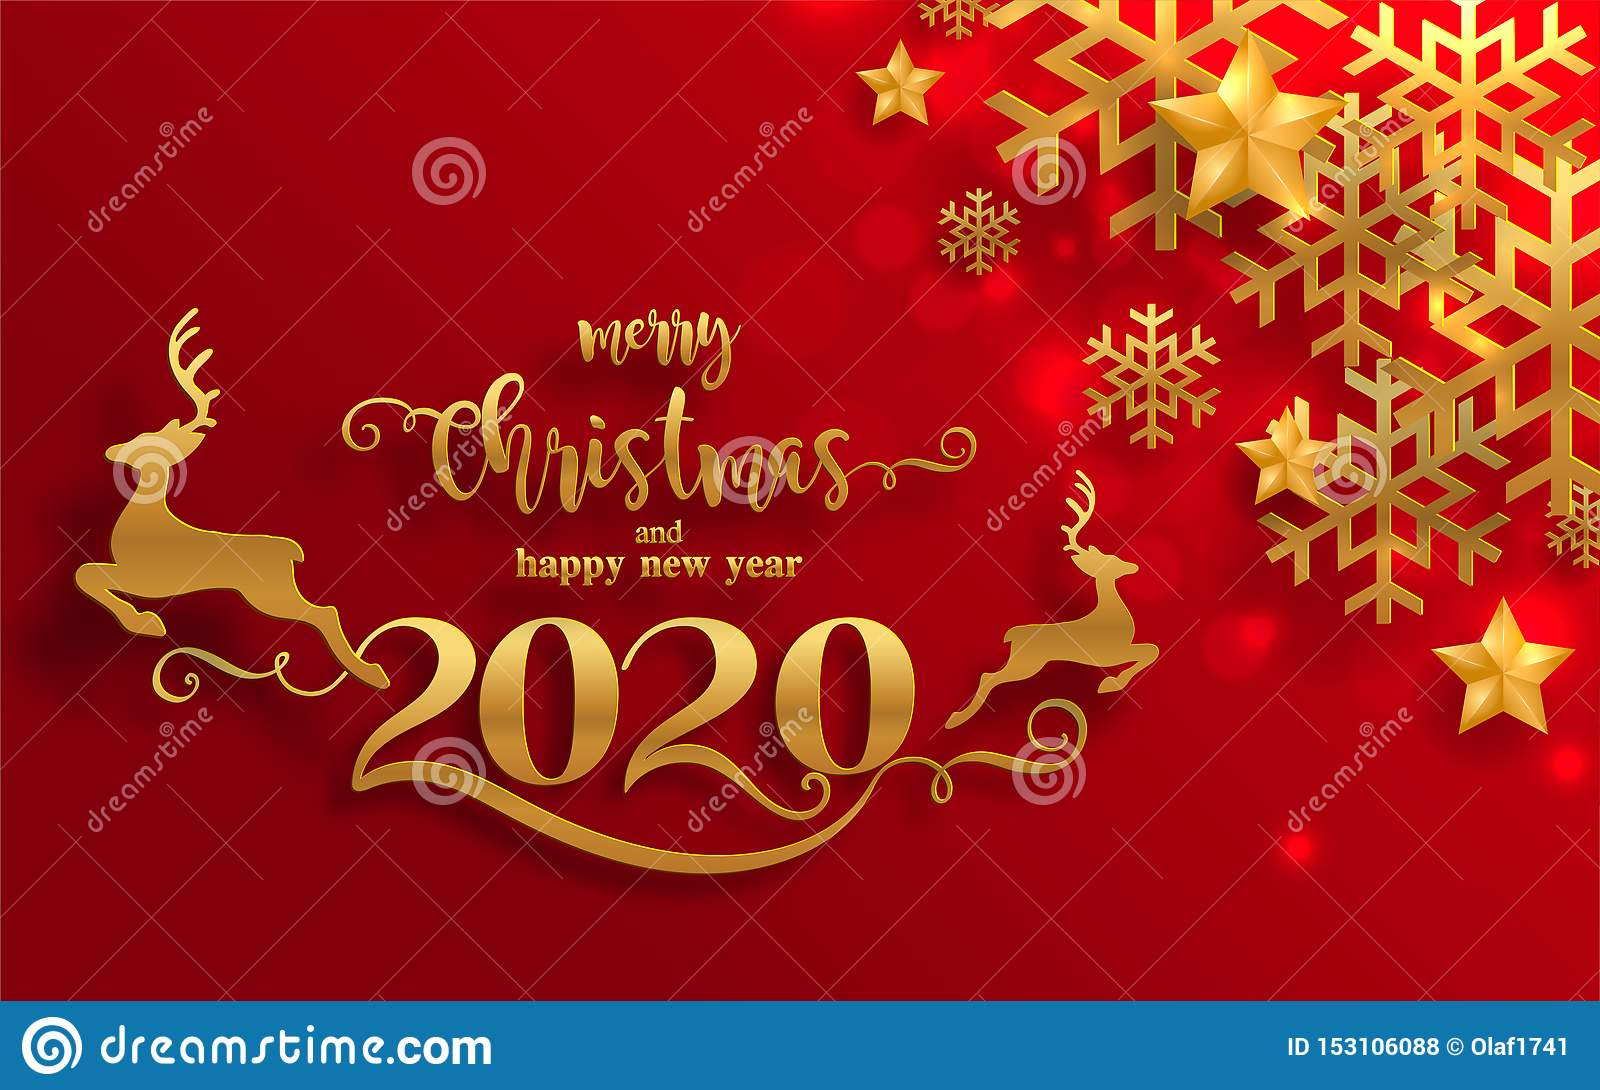 Christmas Greetings 2020 Merry Christmas Greetings And Happy New Year 2020 Stock Vector